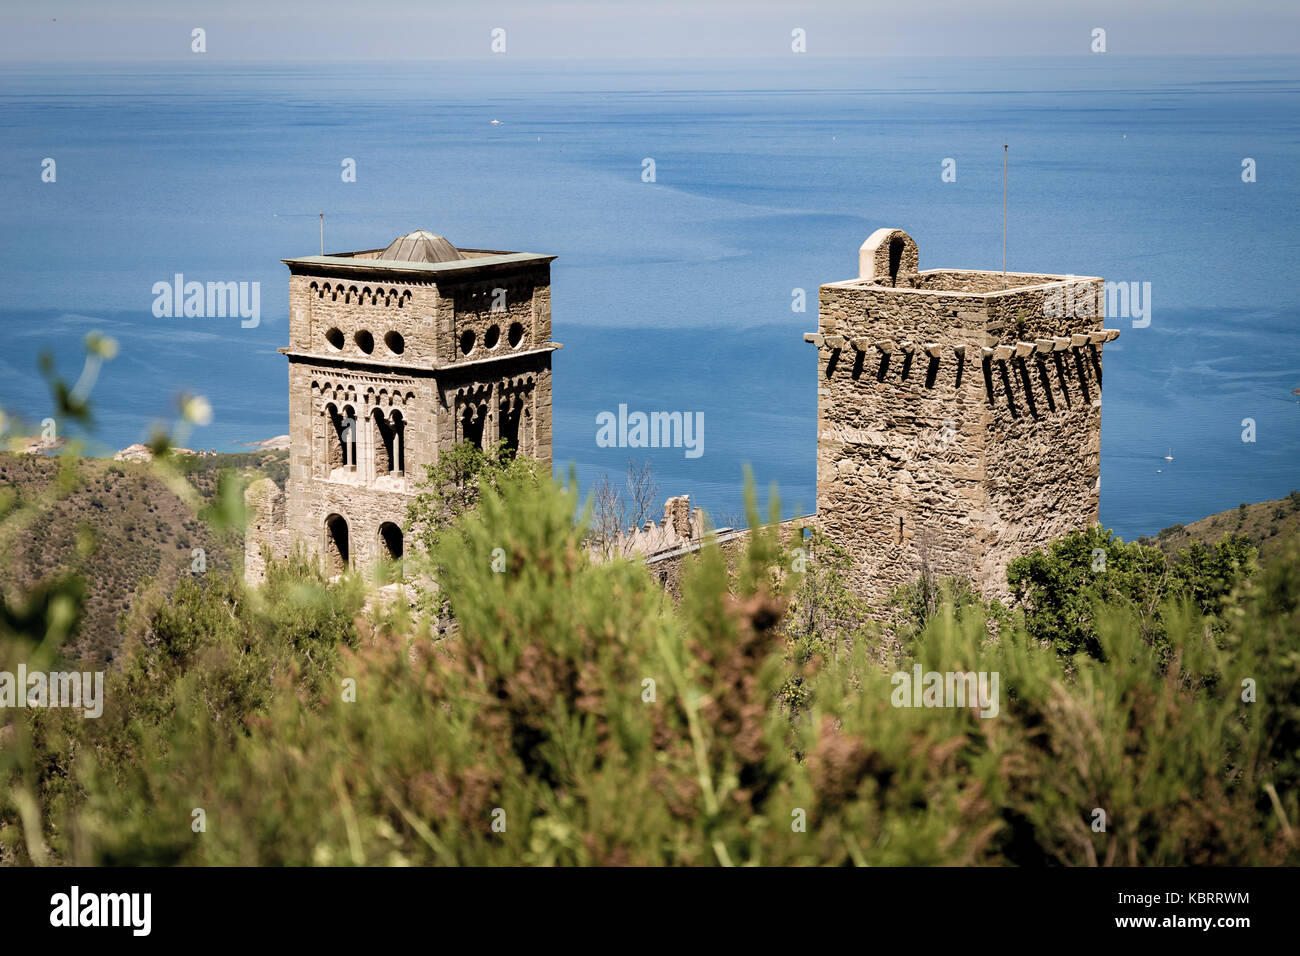 Bushes on the foreground and monastery of Sant Pere de Rodes in back - Stock Image